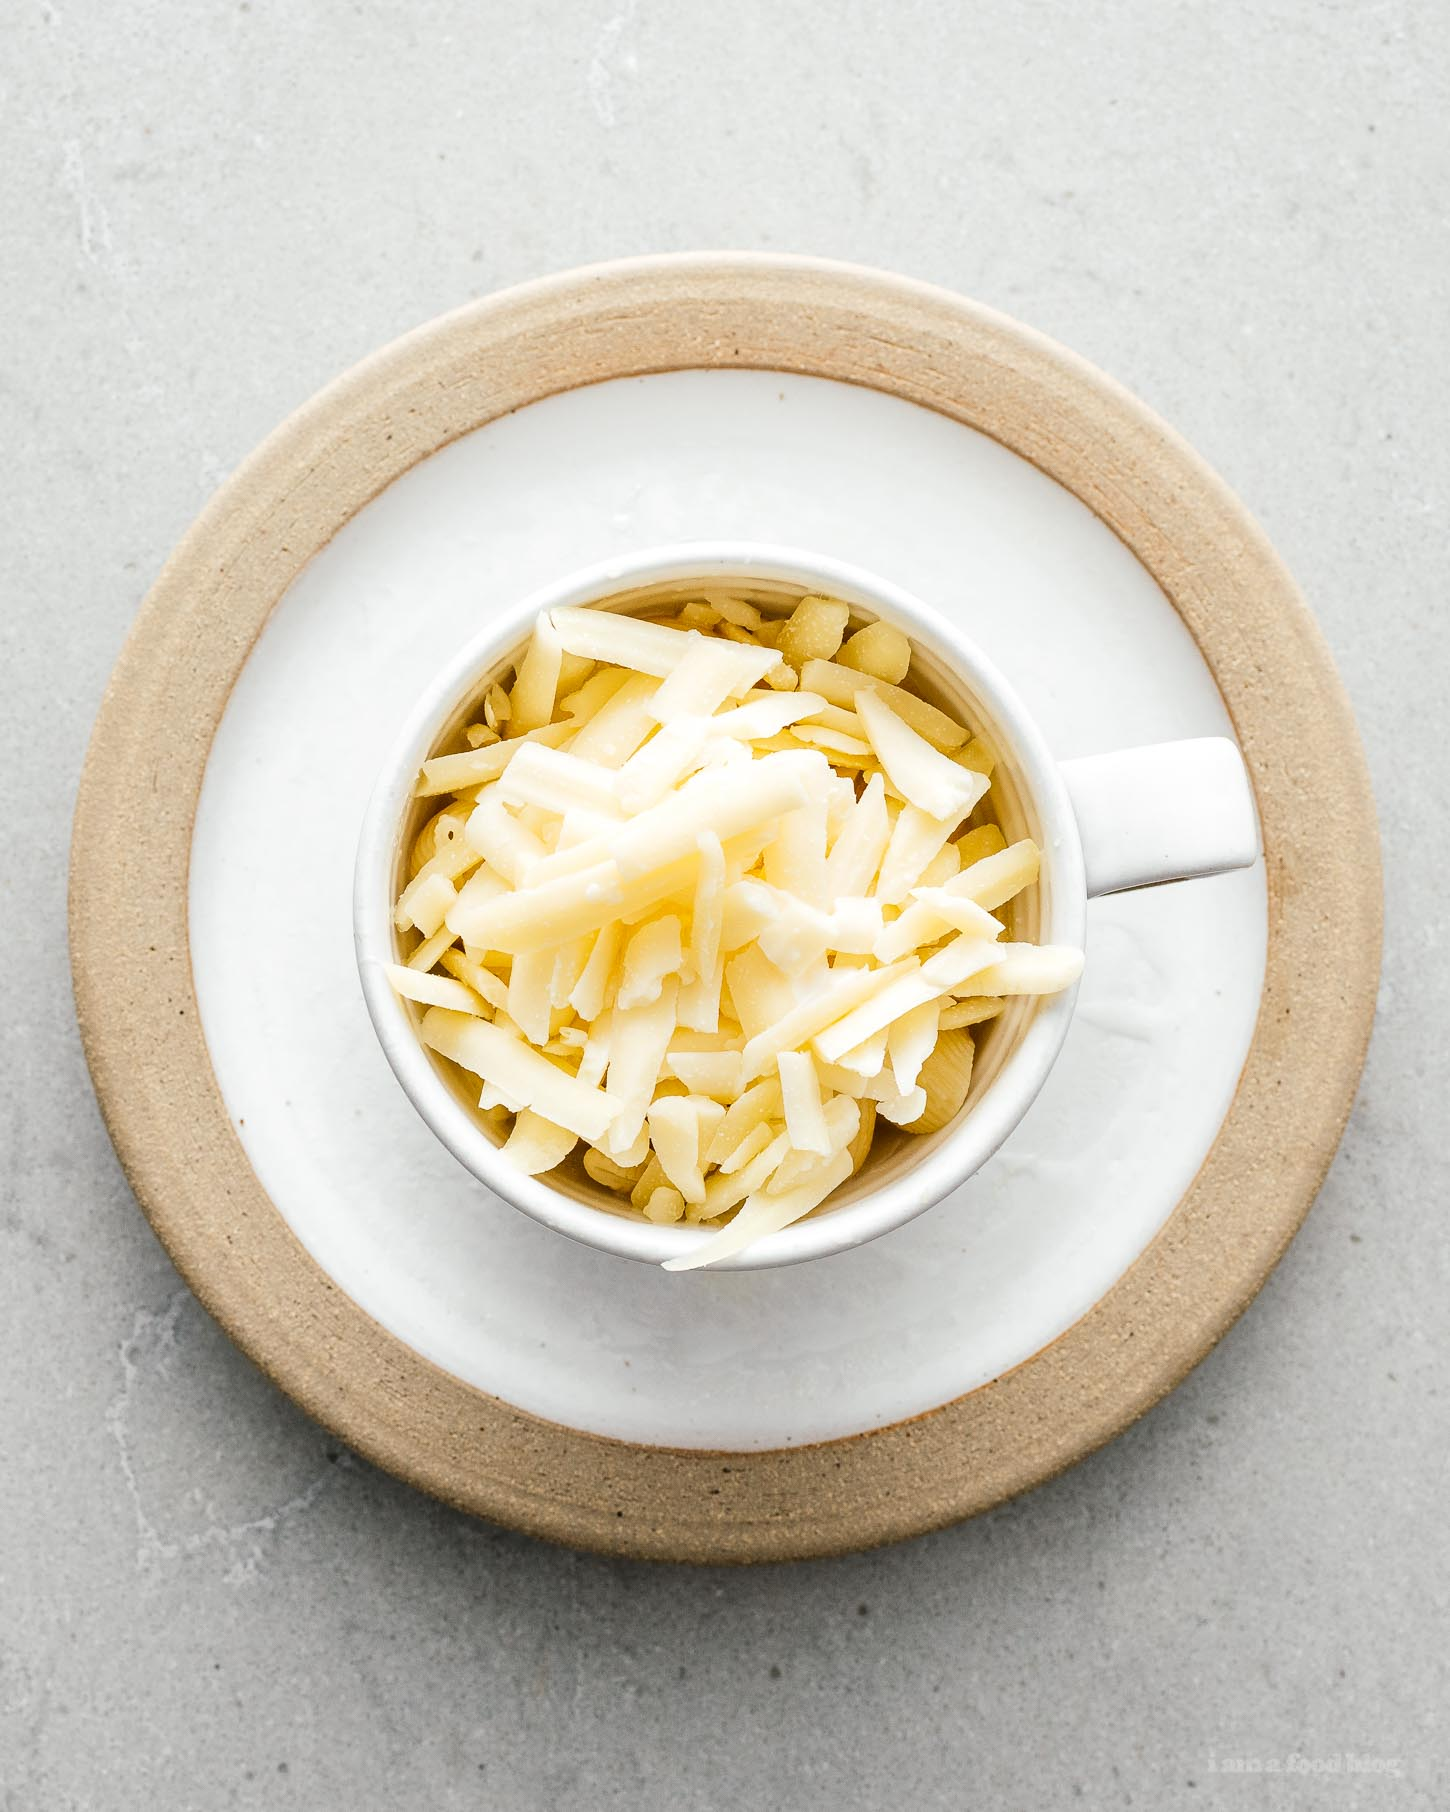 Dorm Room Microwave Mug Mac & Cheese | www.iamafoodblog.com